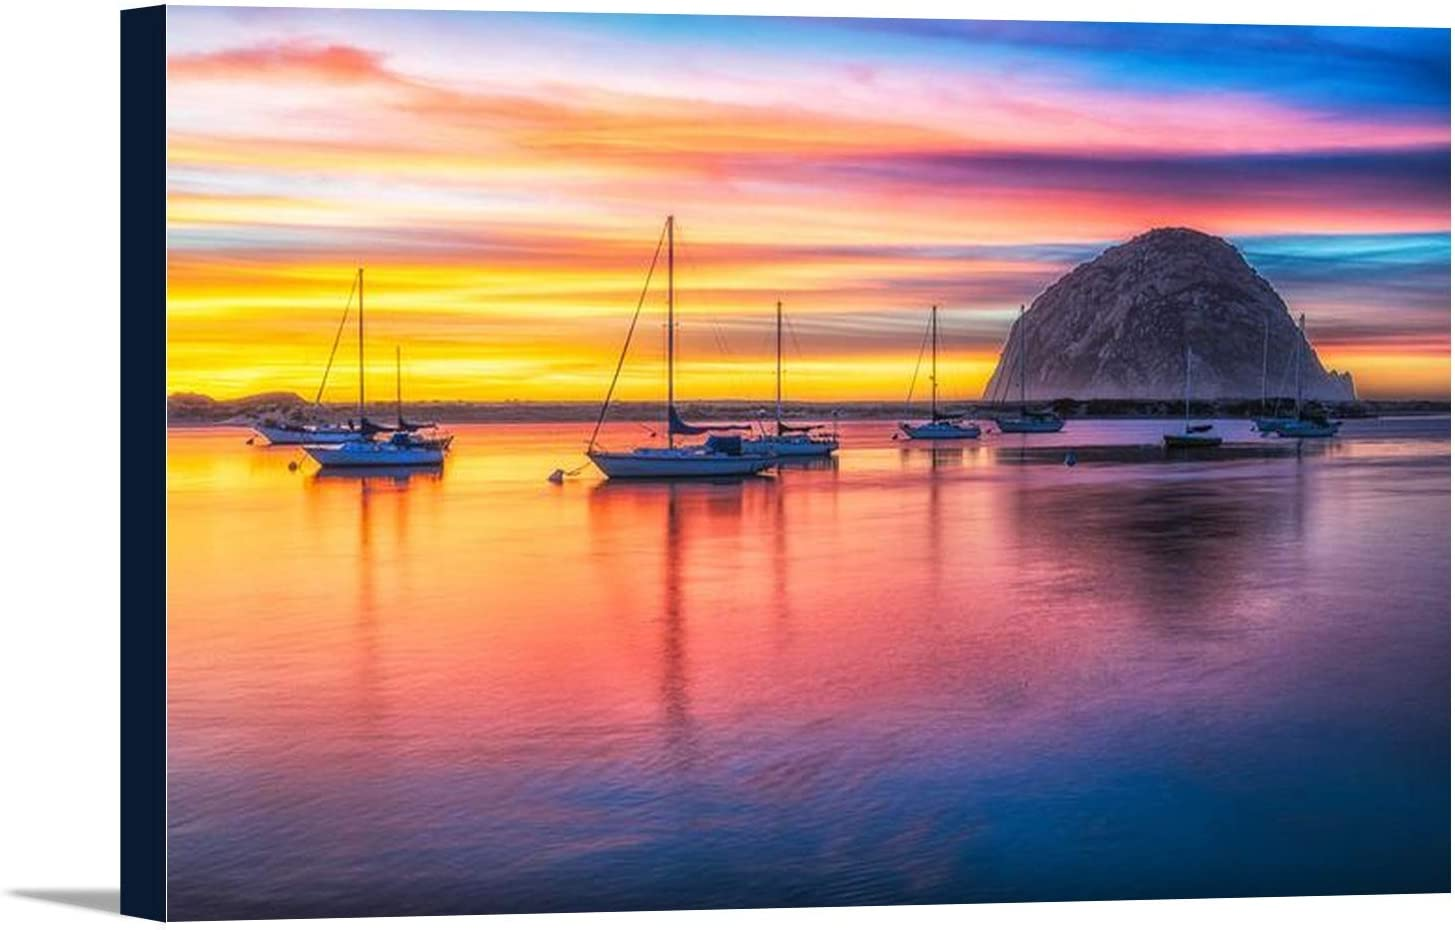 Morro Bay California Rock Boats At Sunset 9033060 36x24 Gallery Wrapped Stretched Canvas Wall Art